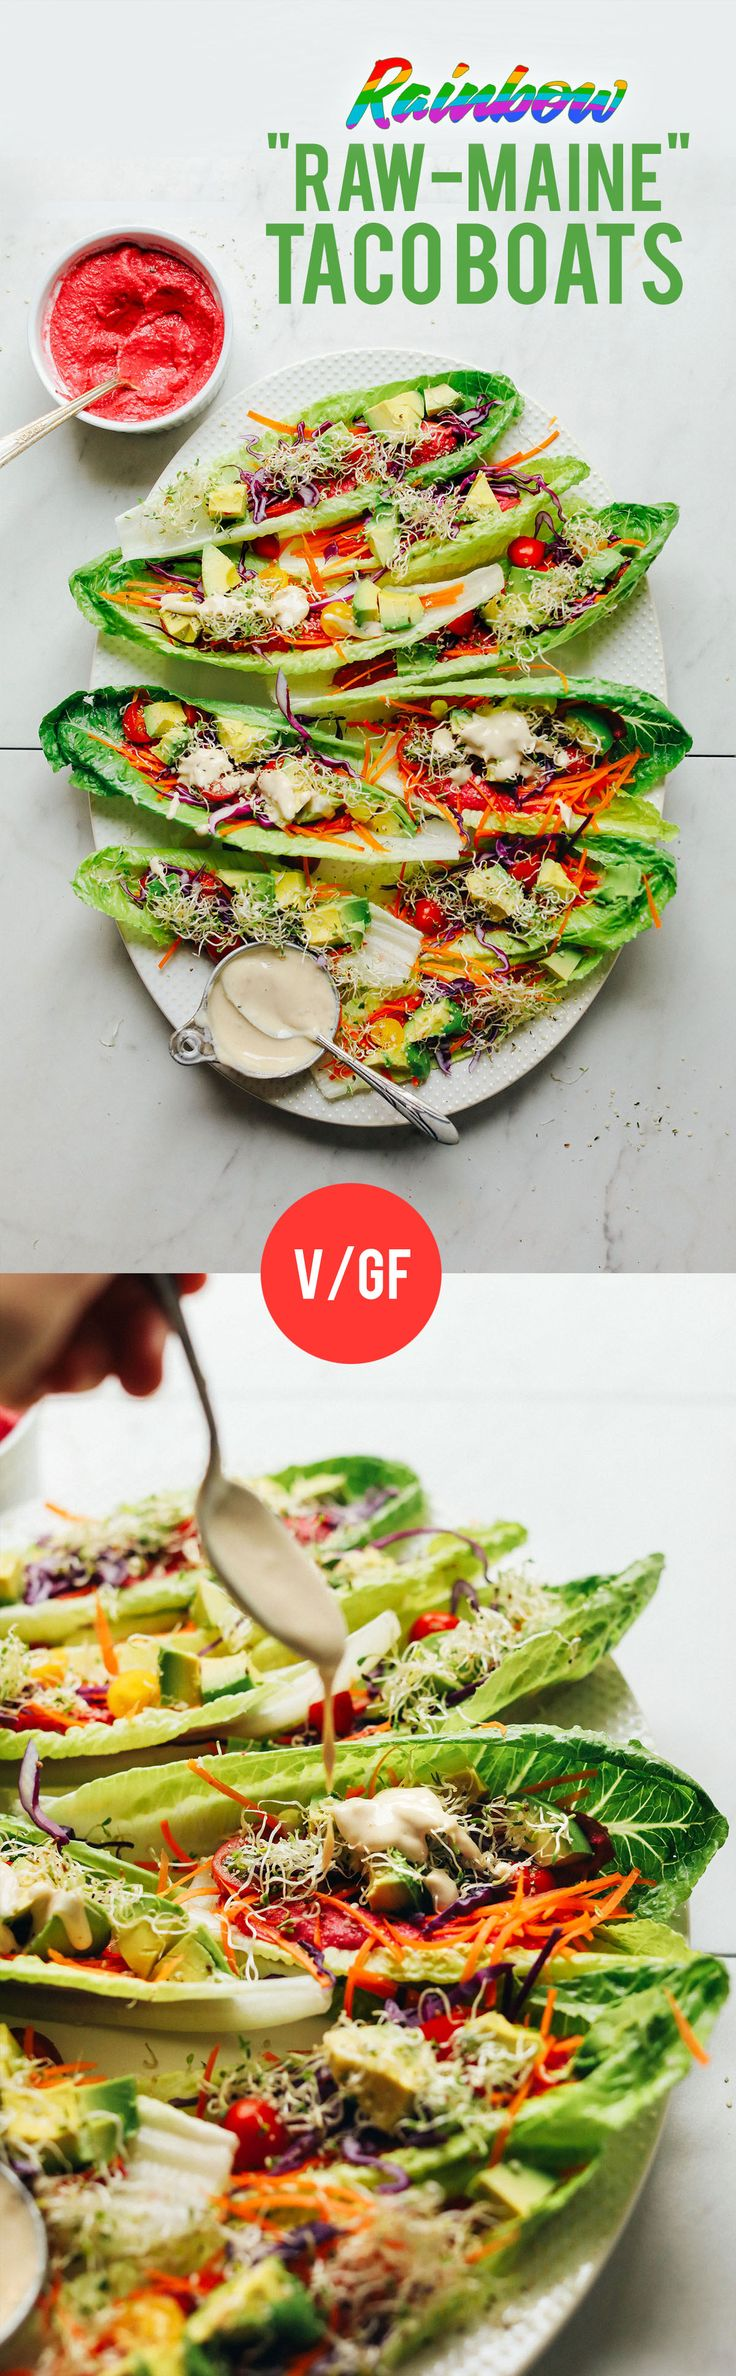 AMAZING Raw-Maine Taco Boats! 15 minutes, no cooking required! These are a perfect summer lunch or dinner idea when you're on Dr. Fuhrman's 6-week Eat to Live nutritarian plan! You can easily make the tahini sauce compliant by leaving out the maple syrup and replacing with 1 or 2 pitted dates! xo, Kristen